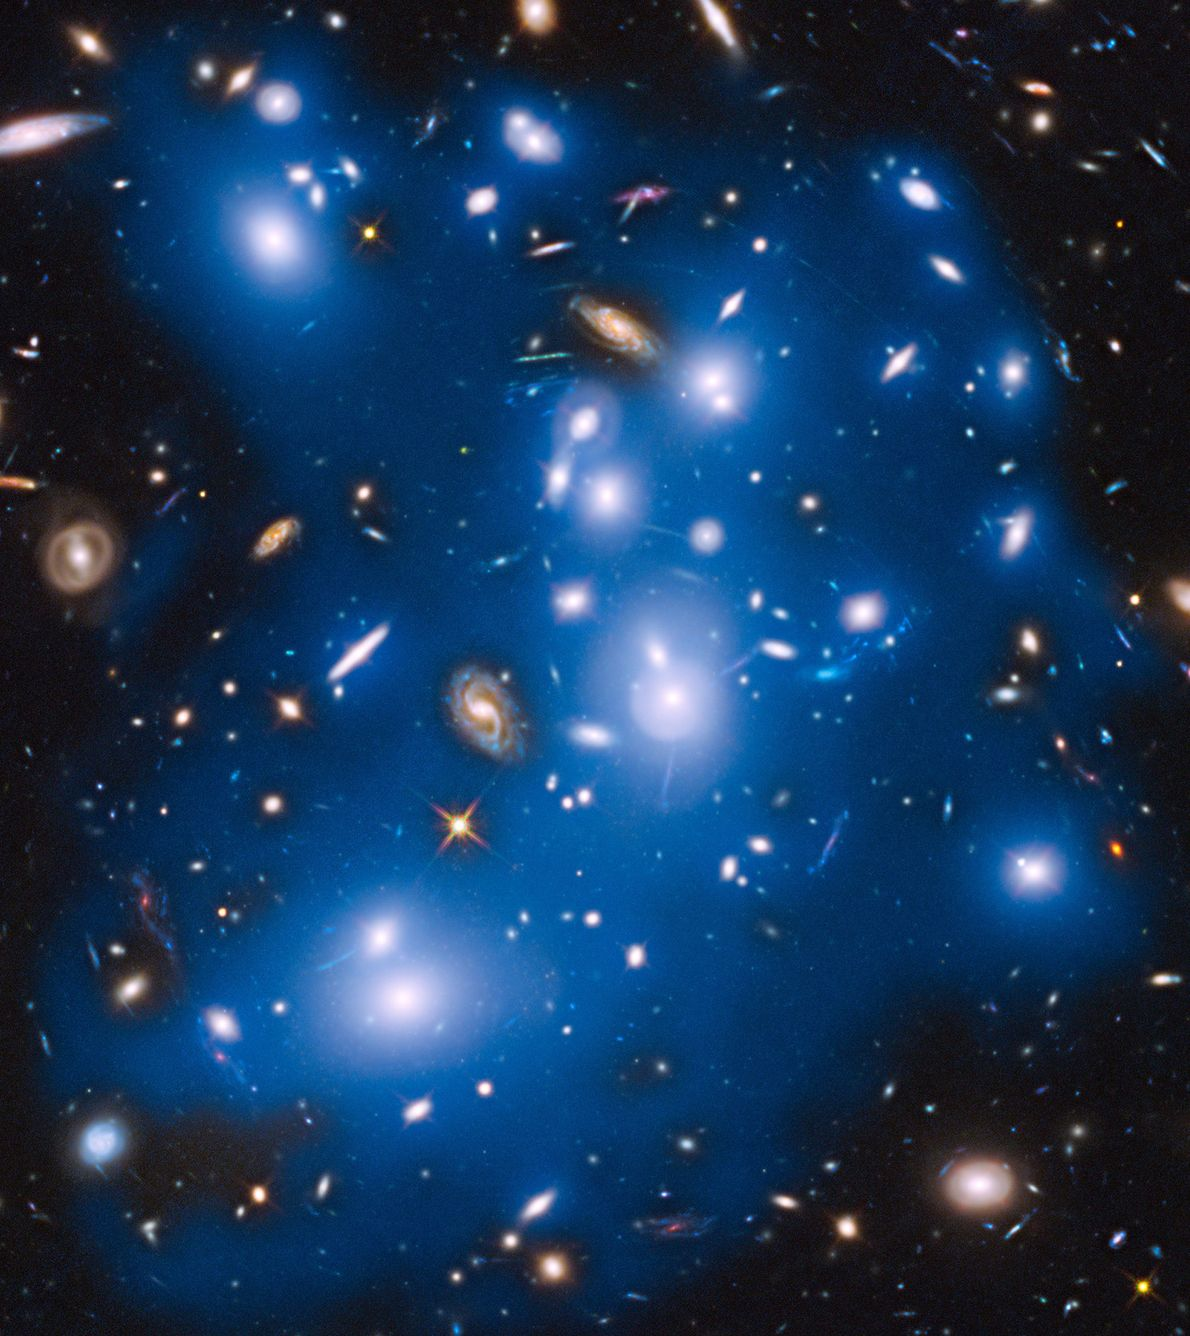 NASA's Hubble Space Telescope has picked up the faint, ghostly glow of stars ejected from ancient ...